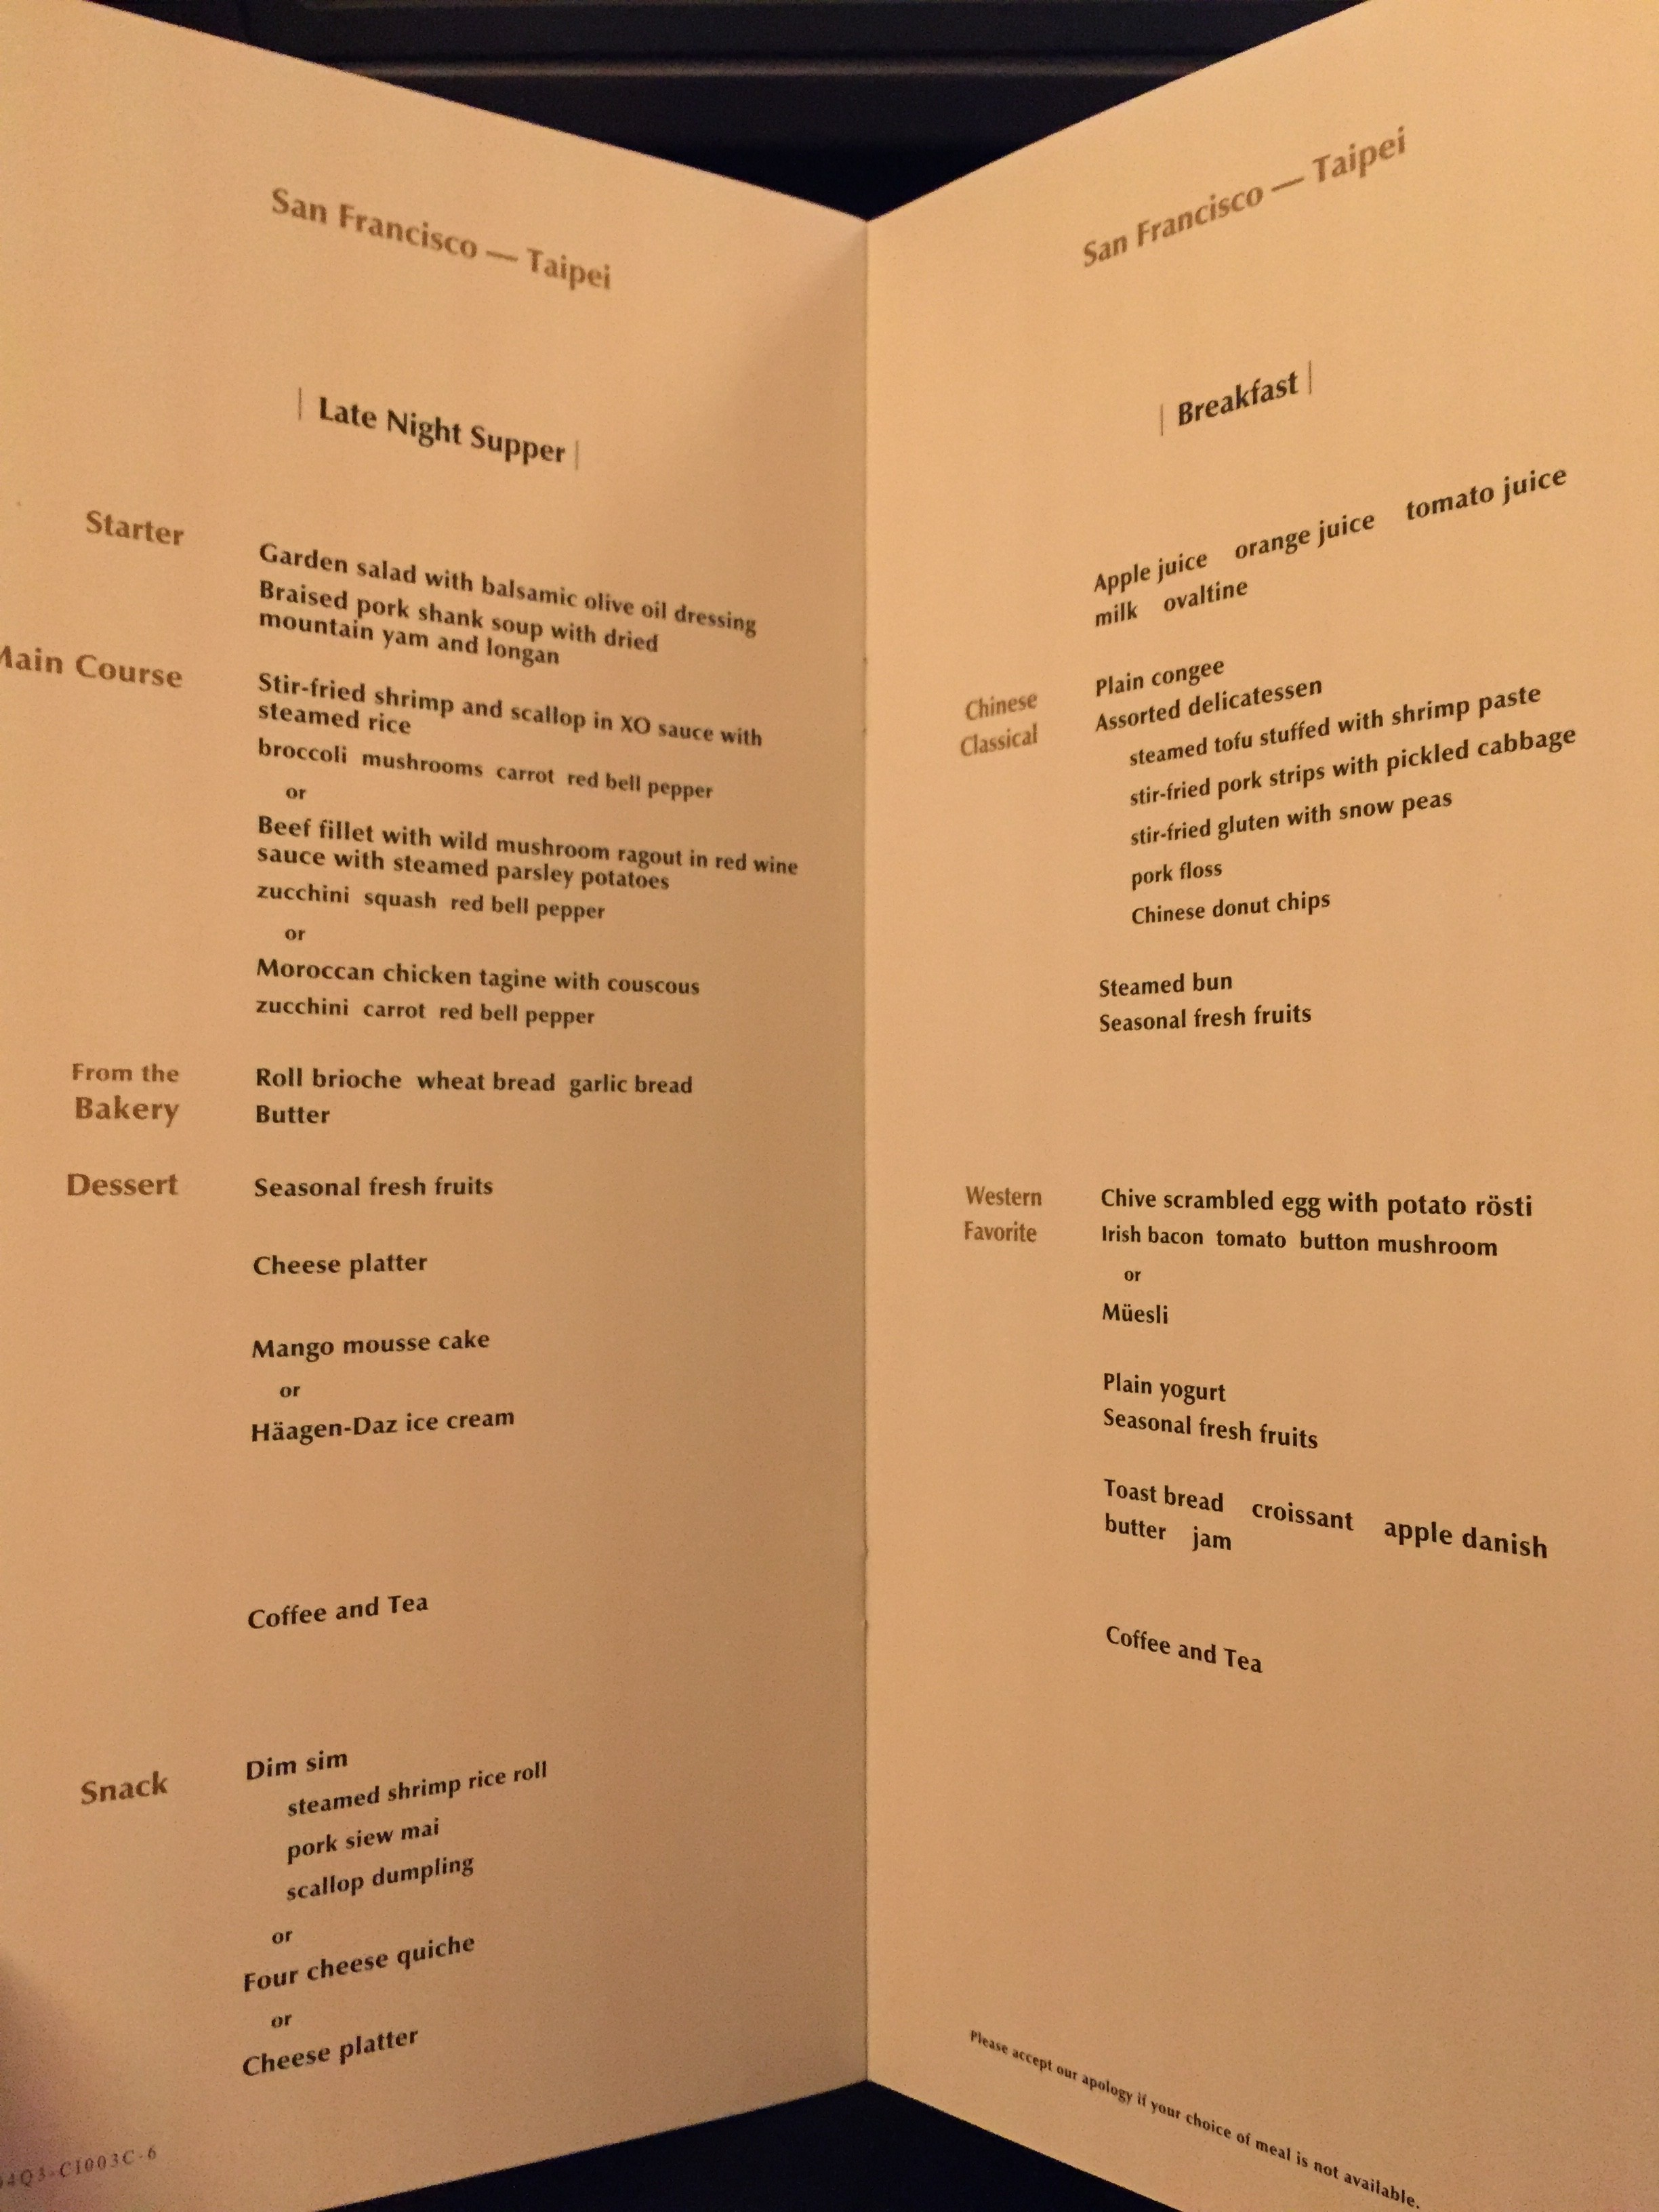 Long menu list, along with between meal snack options (dim sum!)